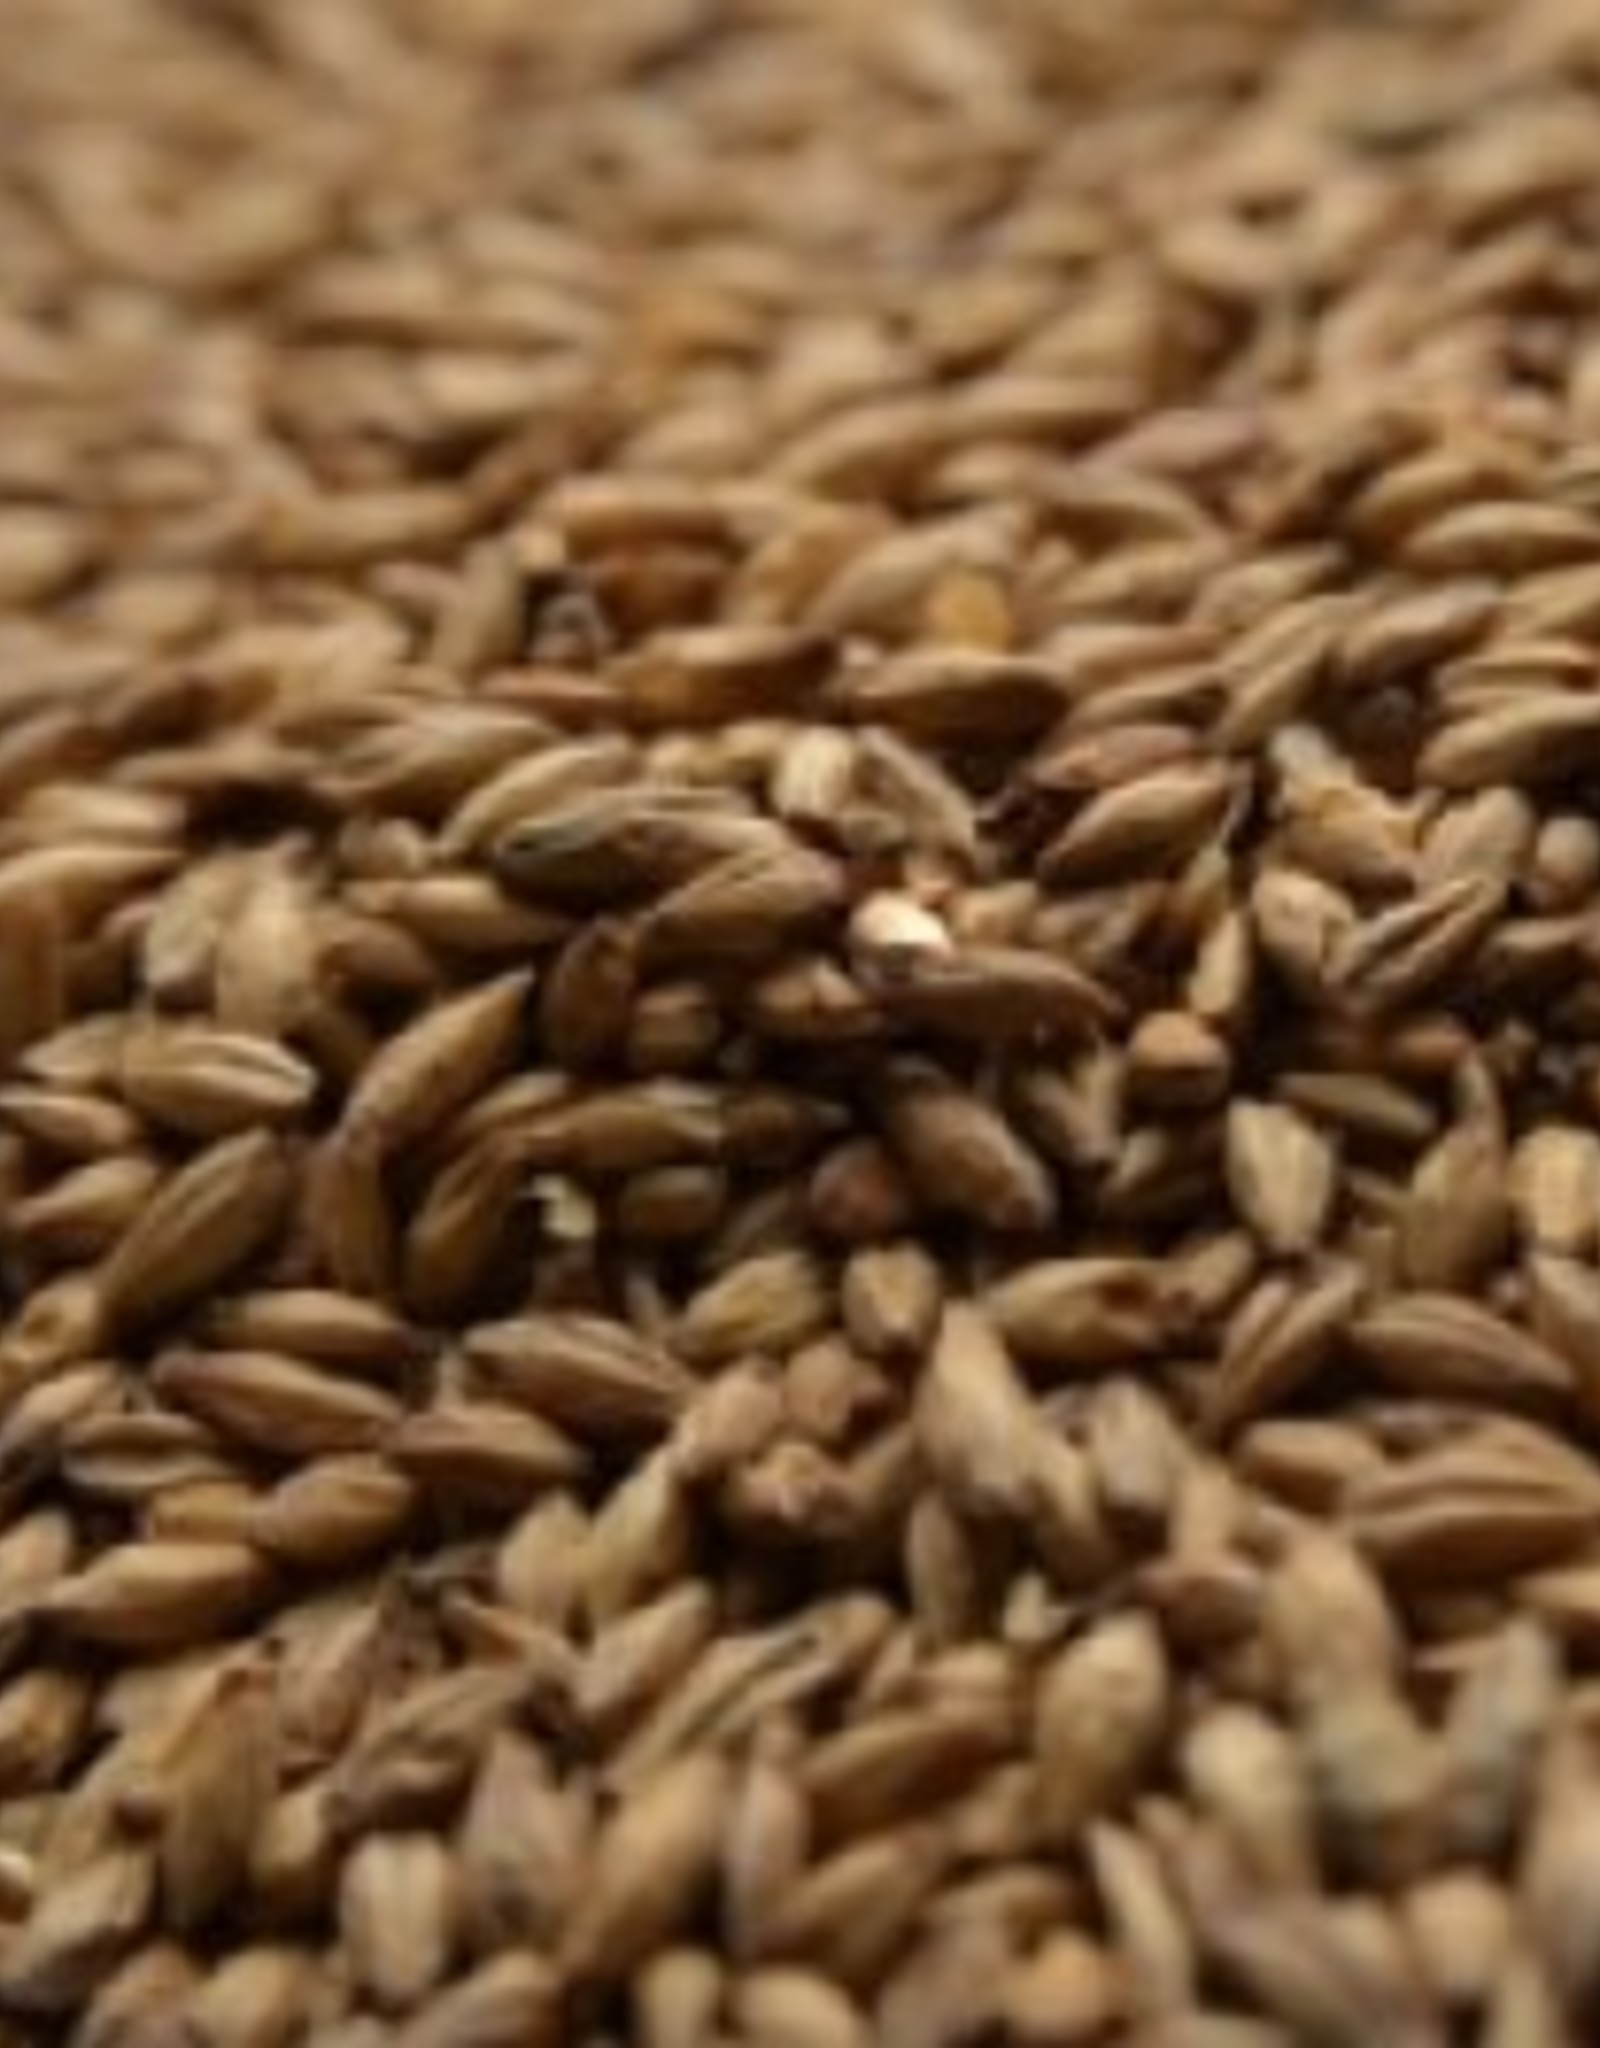 BRIESS Malt Type:	Base<br /> Grain Origin:	North America<br /> Wort Color:	1.8 °Lovibond (3.2 EBC)<br /> Protein:	11.5%<br /> Moisture:	4.2% max.<br /> Extract (dry):	80.5% min.<br /> Diastatic Power:	140 °Lintner<br /> Usage:	100% max.<br /> Briess Brewers Malt is a light colored American base malt. It has a